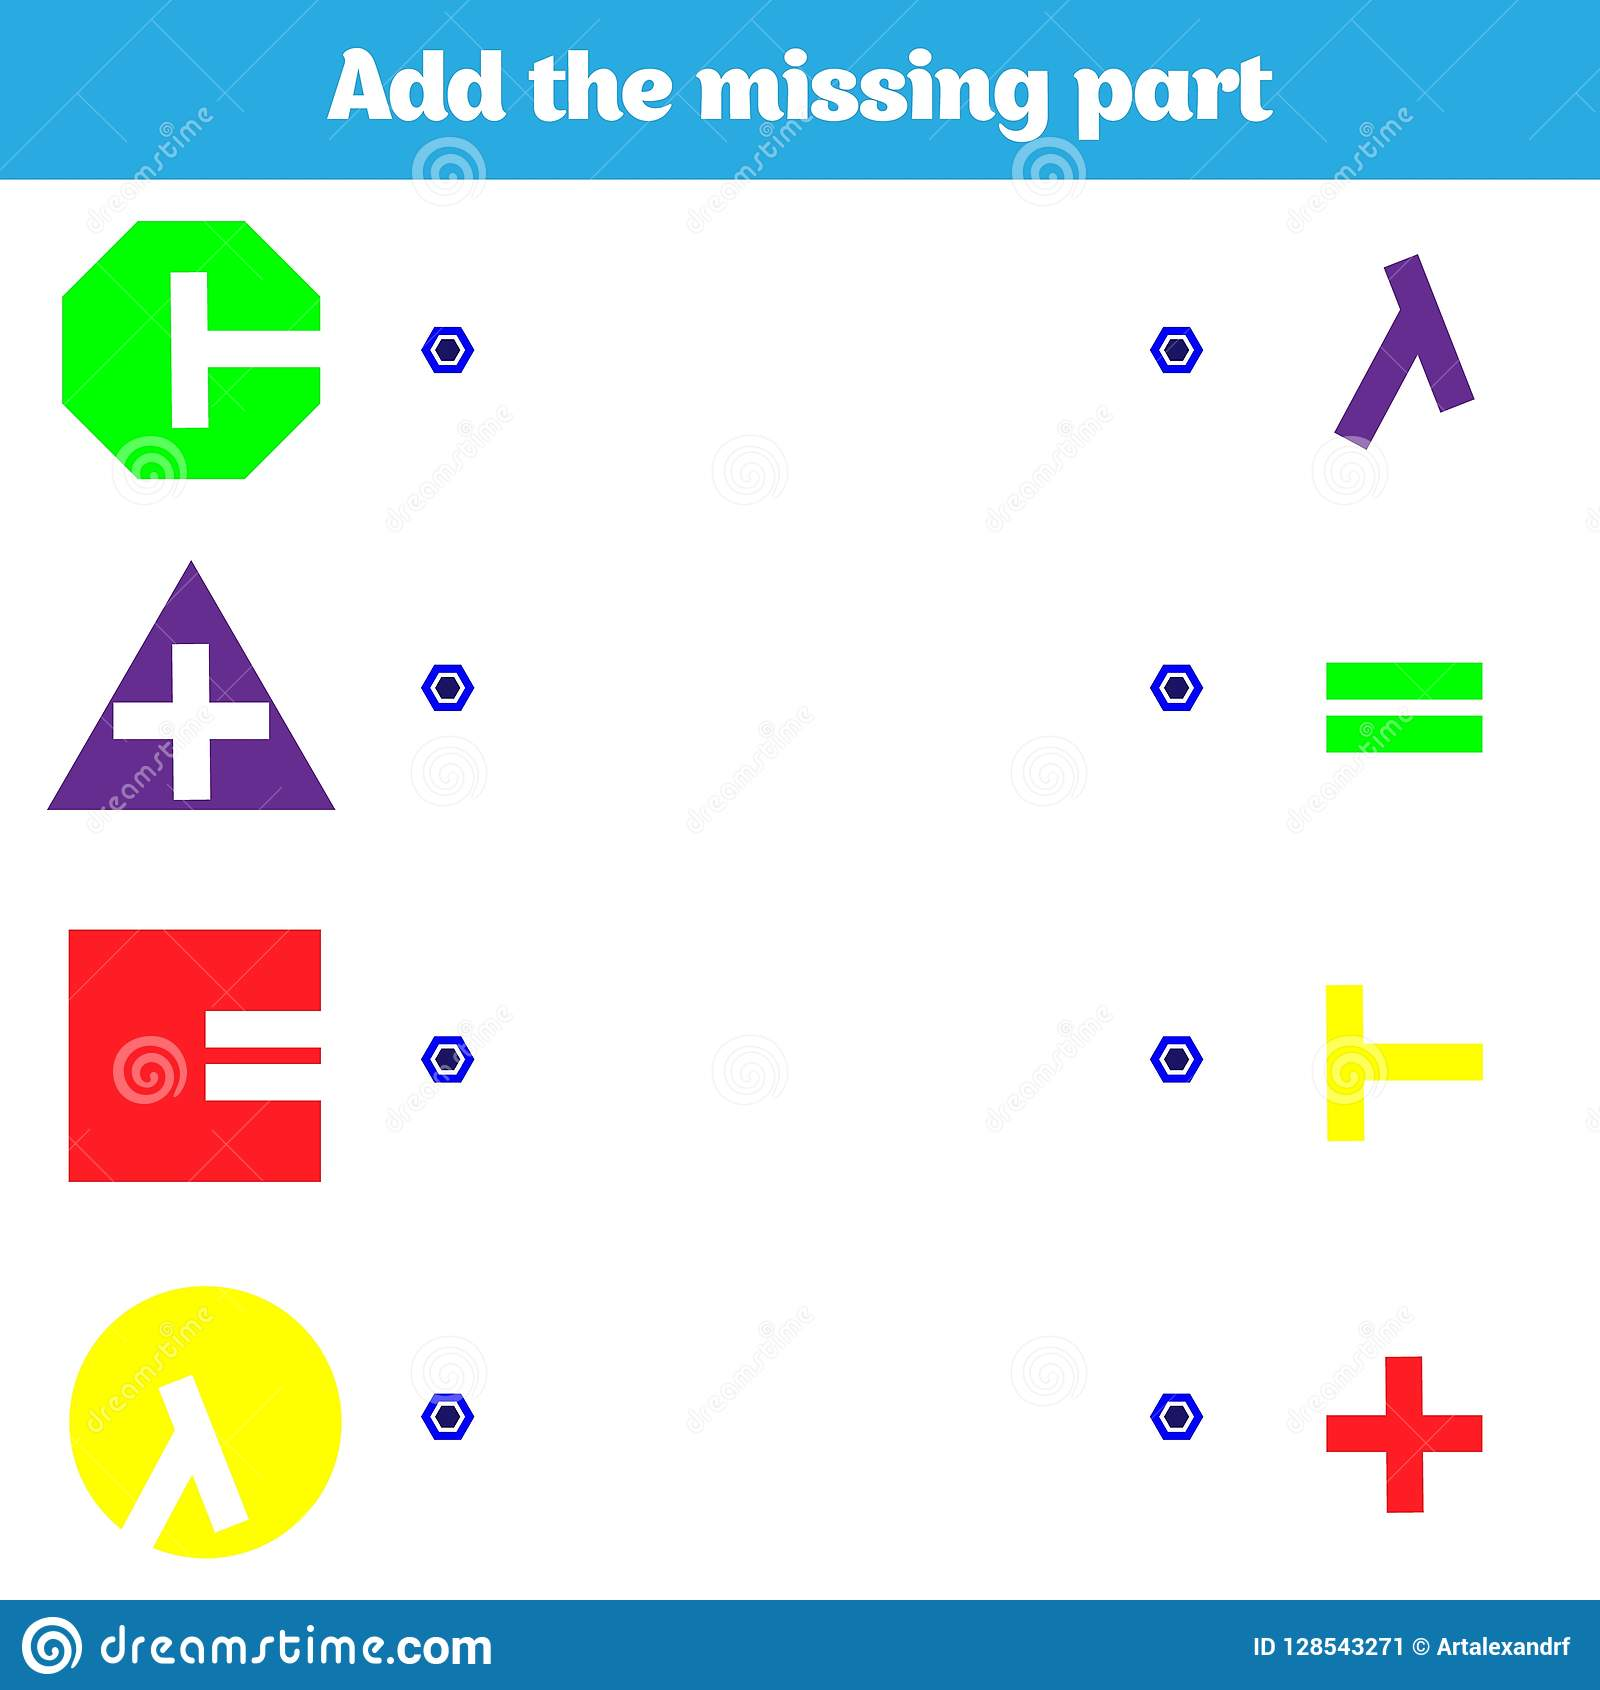 moreover  together with Puzzle Game Visual Educational Game Children Stock Vector  Royalty in addition PARTS OF THE   WHAT´S MISSING    ESL worksheet by lamejor in addition Puzzle Game  Visual Vector   Photo  Free Trial    Bigstock furthermore  likewise Solving Right Triangles Find The Missing Side Worksheet   Free together with  besides Worksheets Pages   Animal Parts Worksheets For Grade Kids additionally Explore Activity  What Part Is Missing    TeacherVision also Shutterstock   PuzzlePix also  moreover Missing Pieces Worksheets   Sparks furthermore  additionally Visual Logic Puzzle Find Missing Piece Puzzle Game For Kids furthermore . on find the missing part worksheet